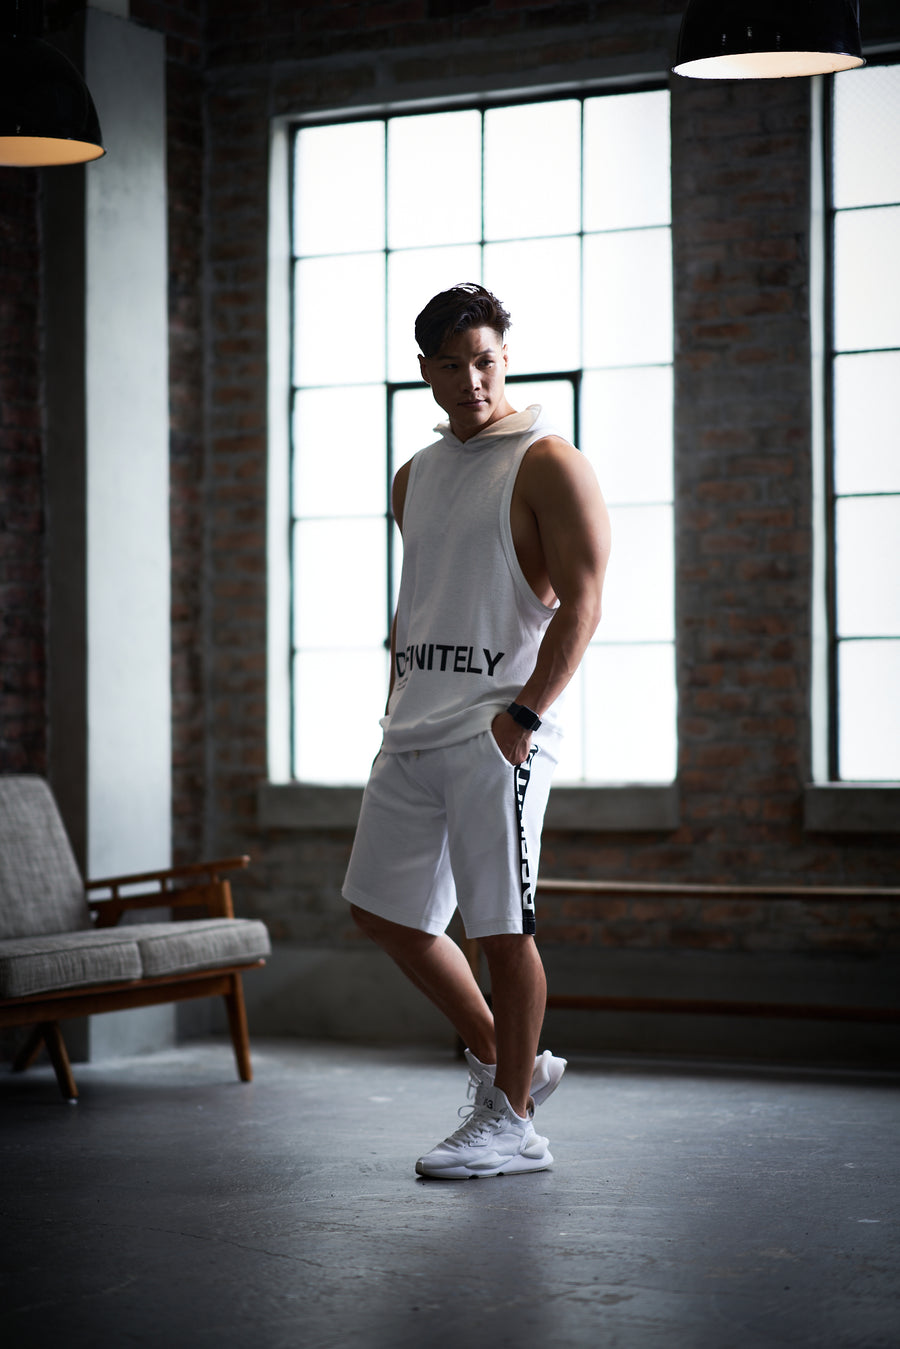 Hoodie Tank Top [DEFINITELY] - White